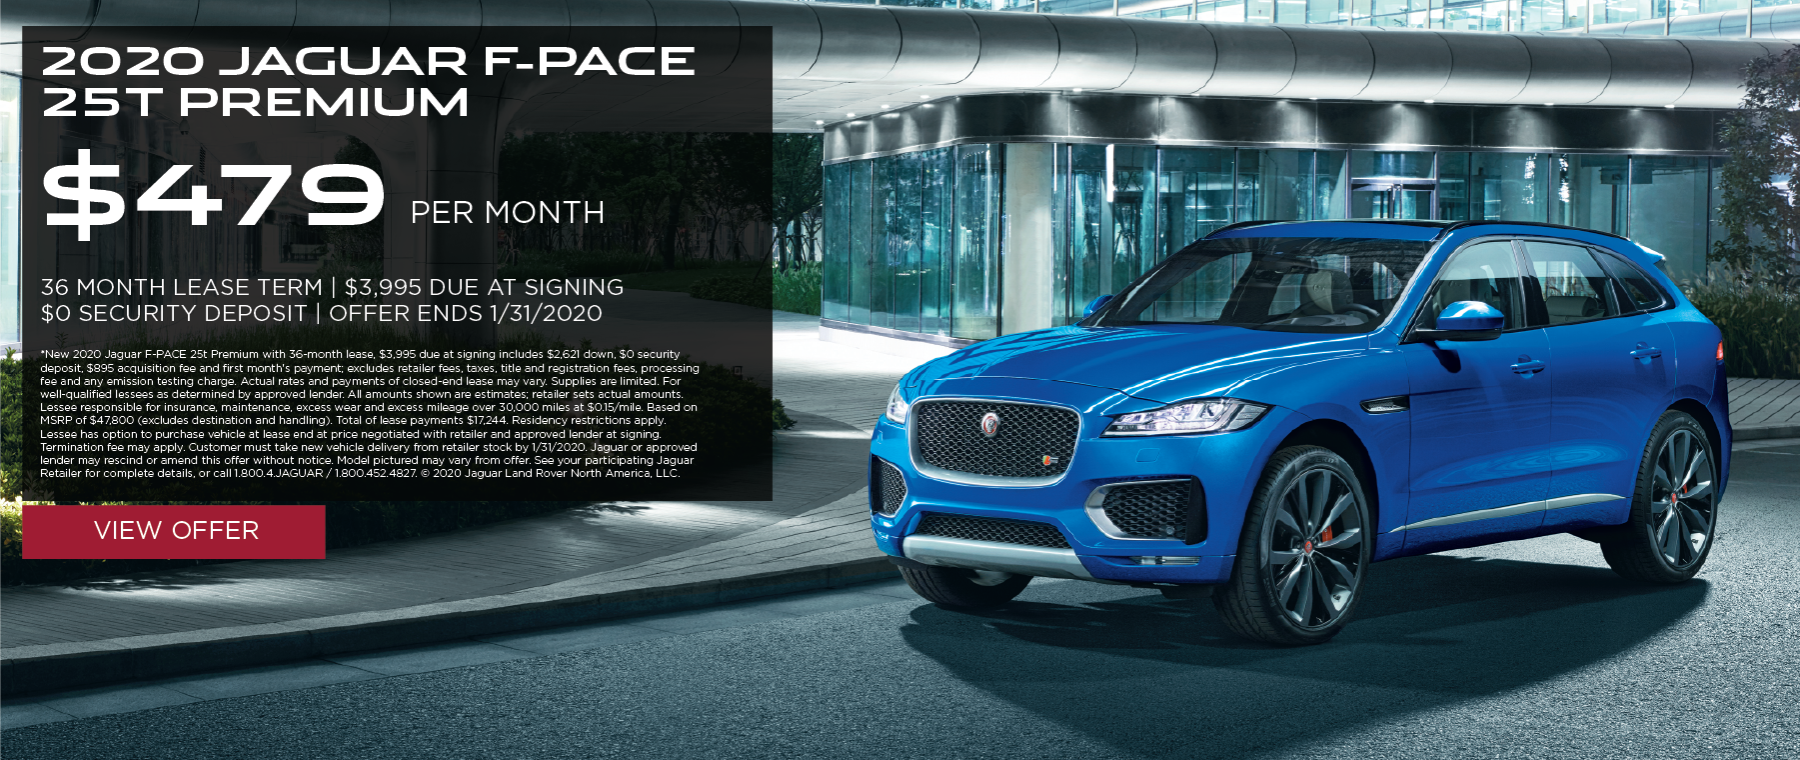 2020 Jaguar F-PACE 25T PREMIUM | $479/month | 36-month lease | 10,000 miles/year | $3,995 due at signing | $0 security deposit | expires 1/31/2020